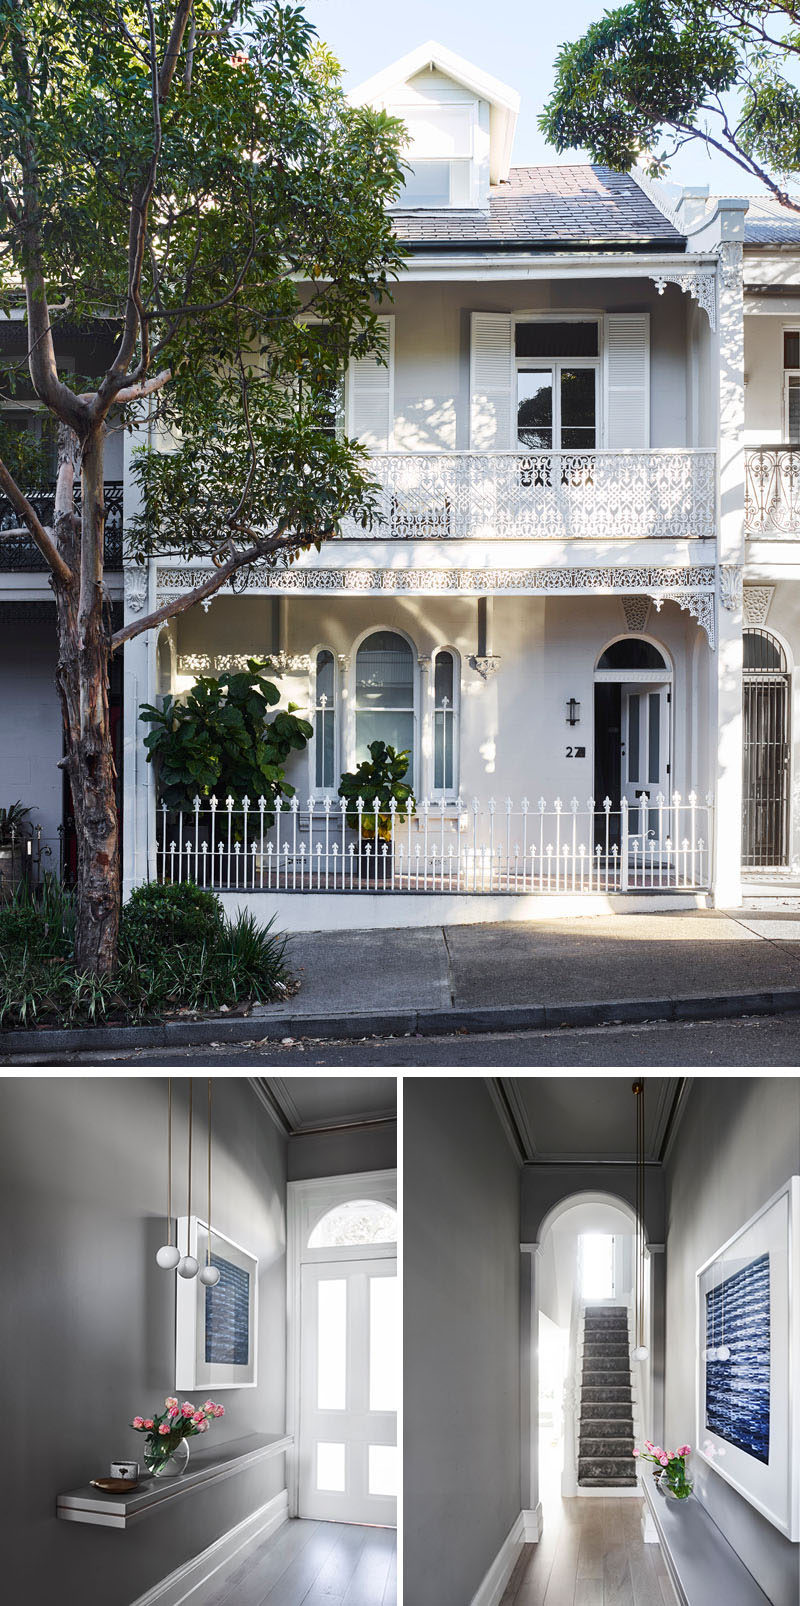 Smart Design Studio have completed the transformation of a traditional Victorian house in Sydney, Australia, as well as adding an extension to the rear of the home. #ModernUpdate #ContemporaryInterior